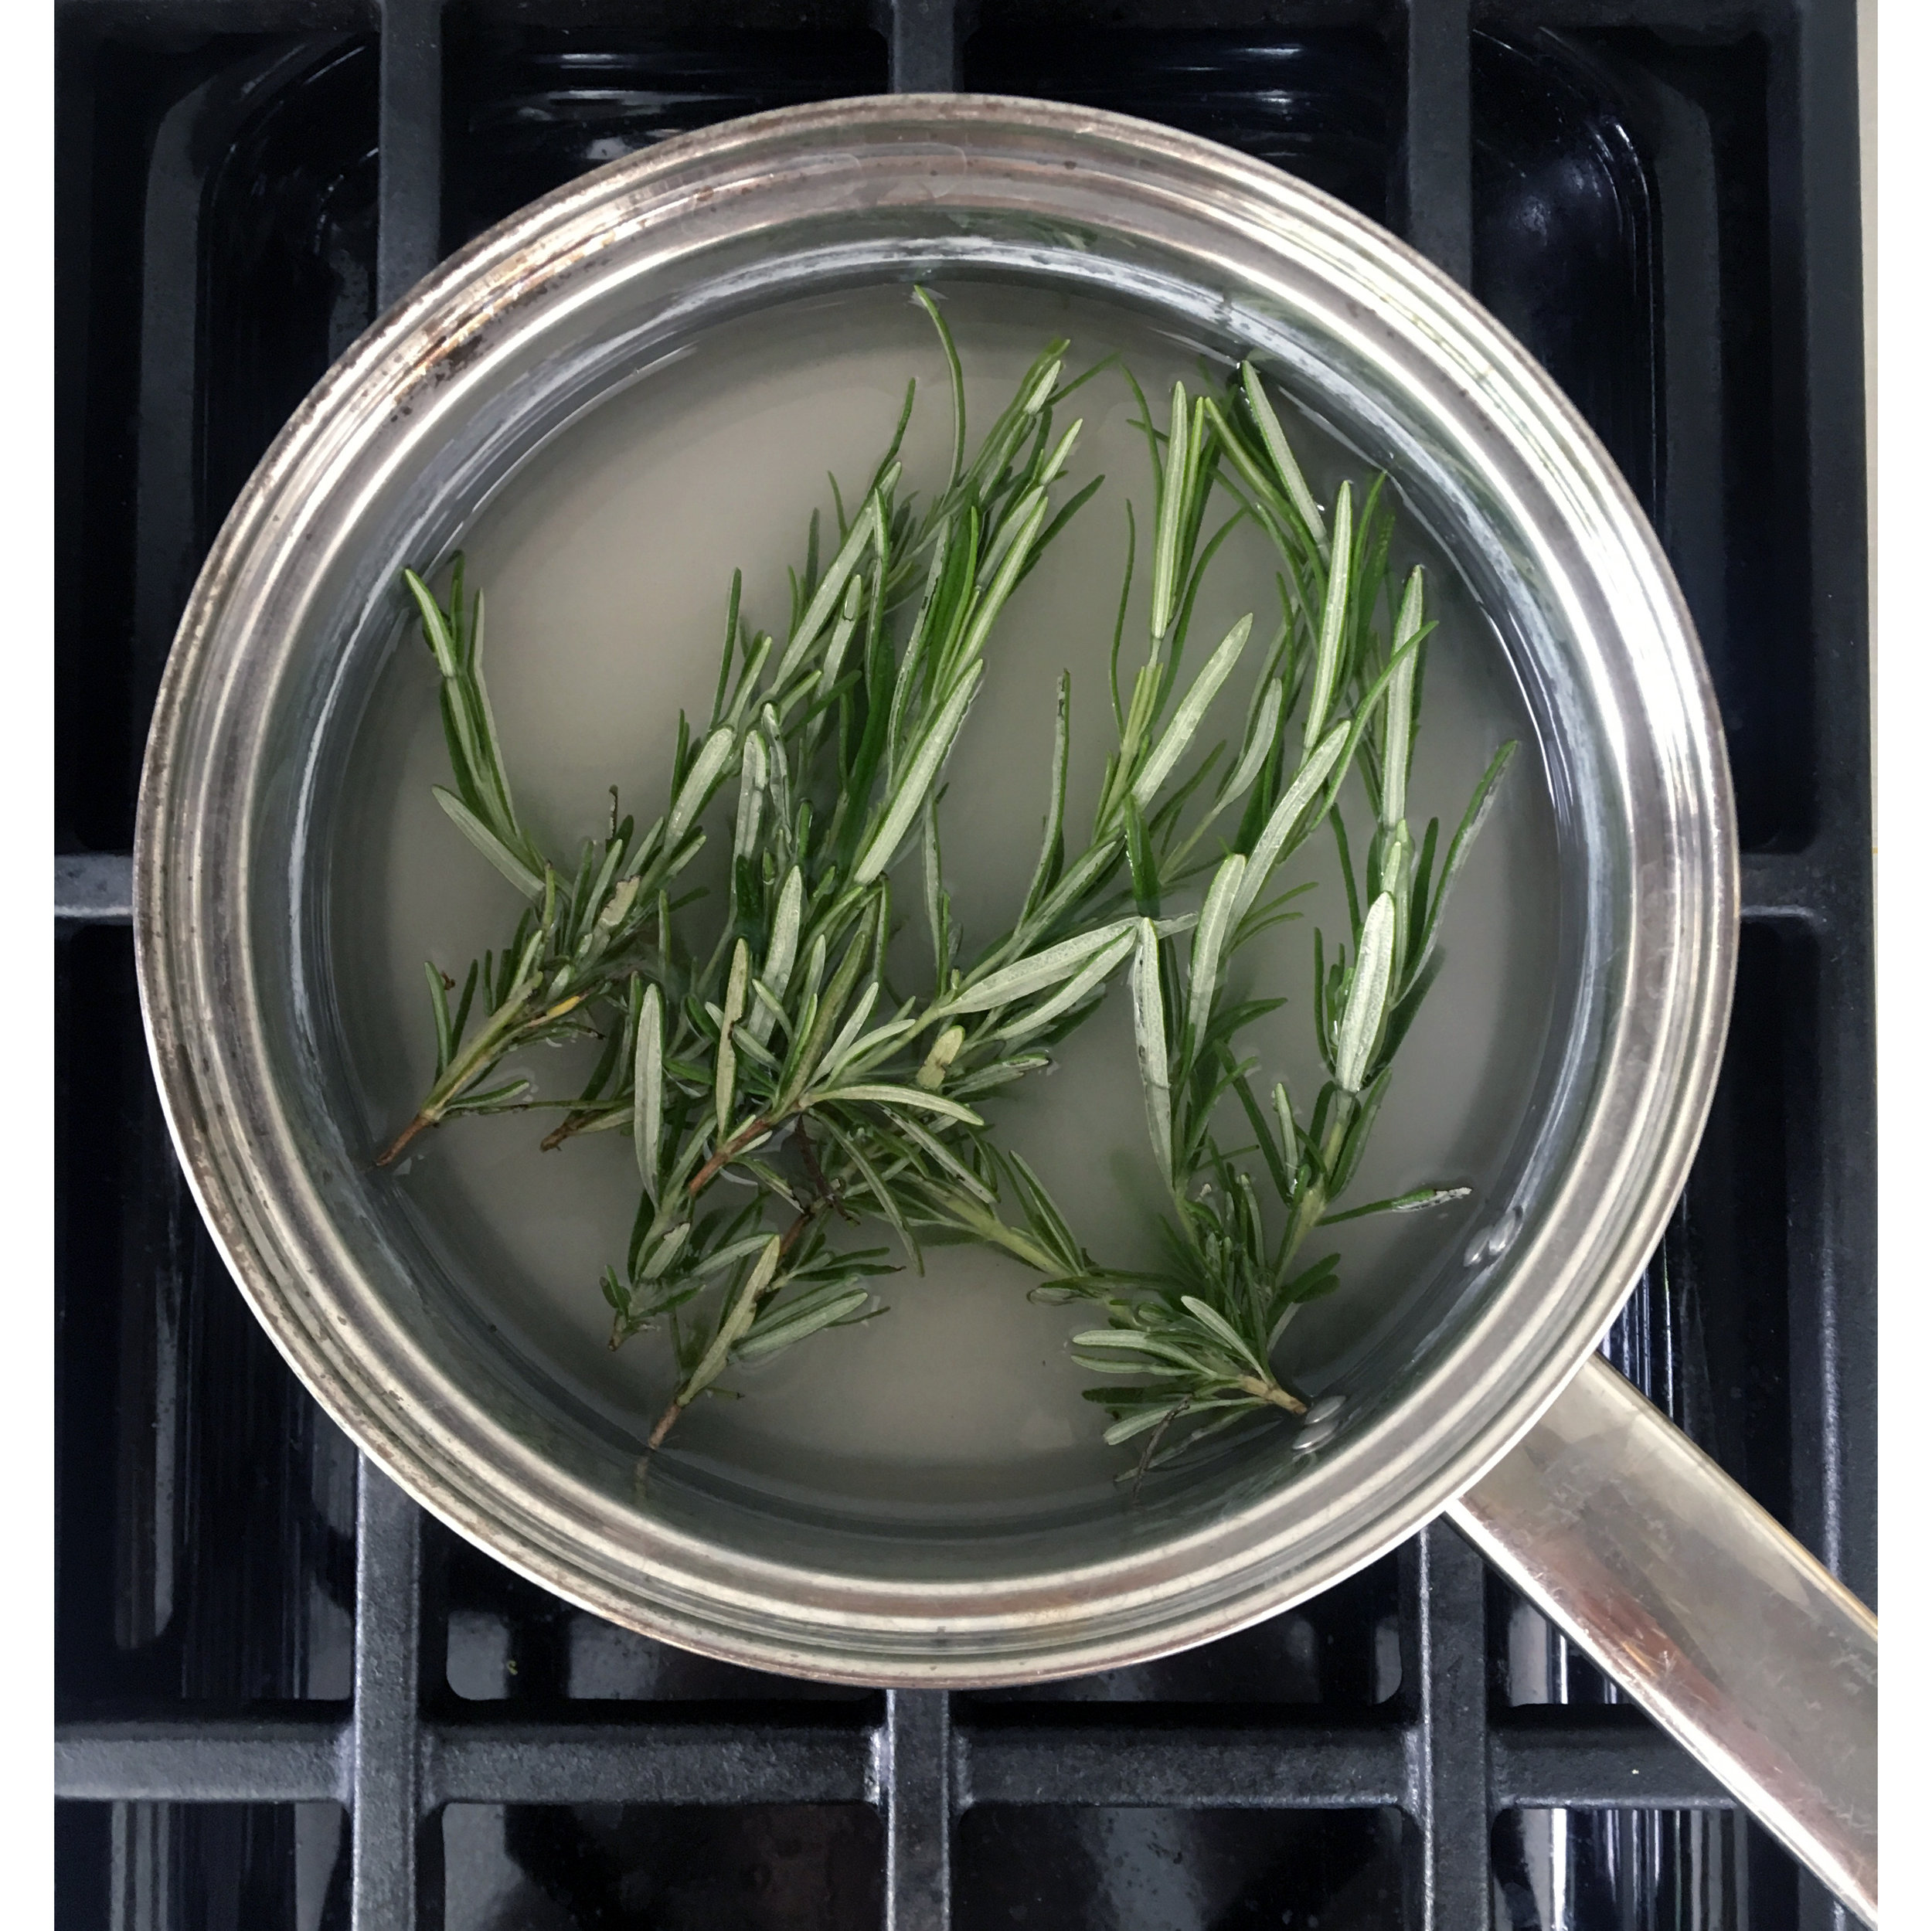 Simple syrup infused with rosemary